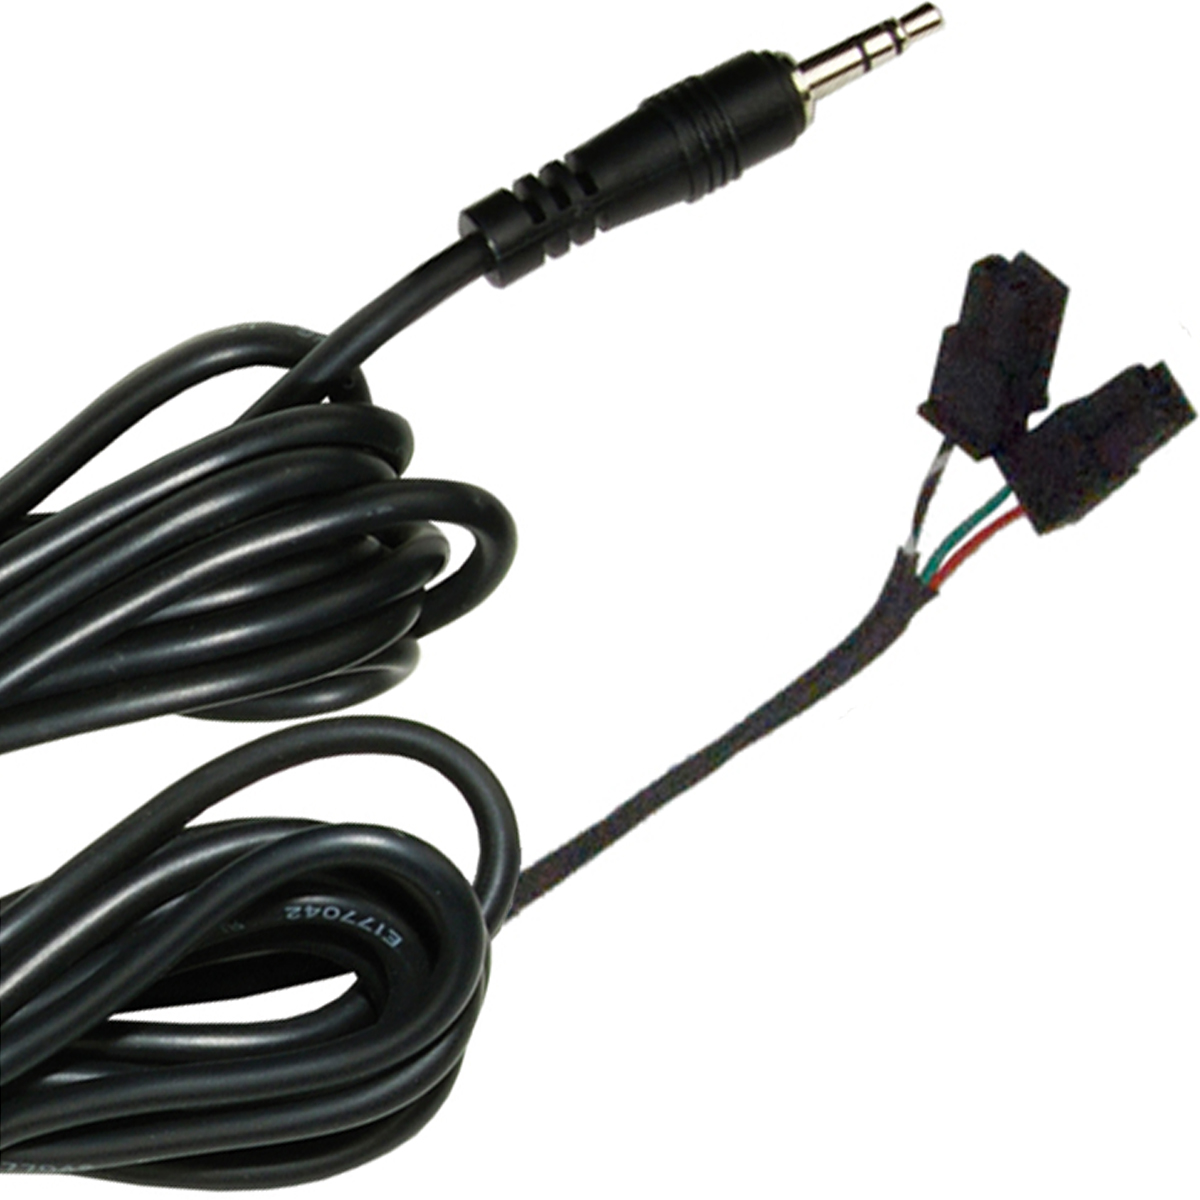 Type 2 Control Cable (for Digital Aquatics Controller)